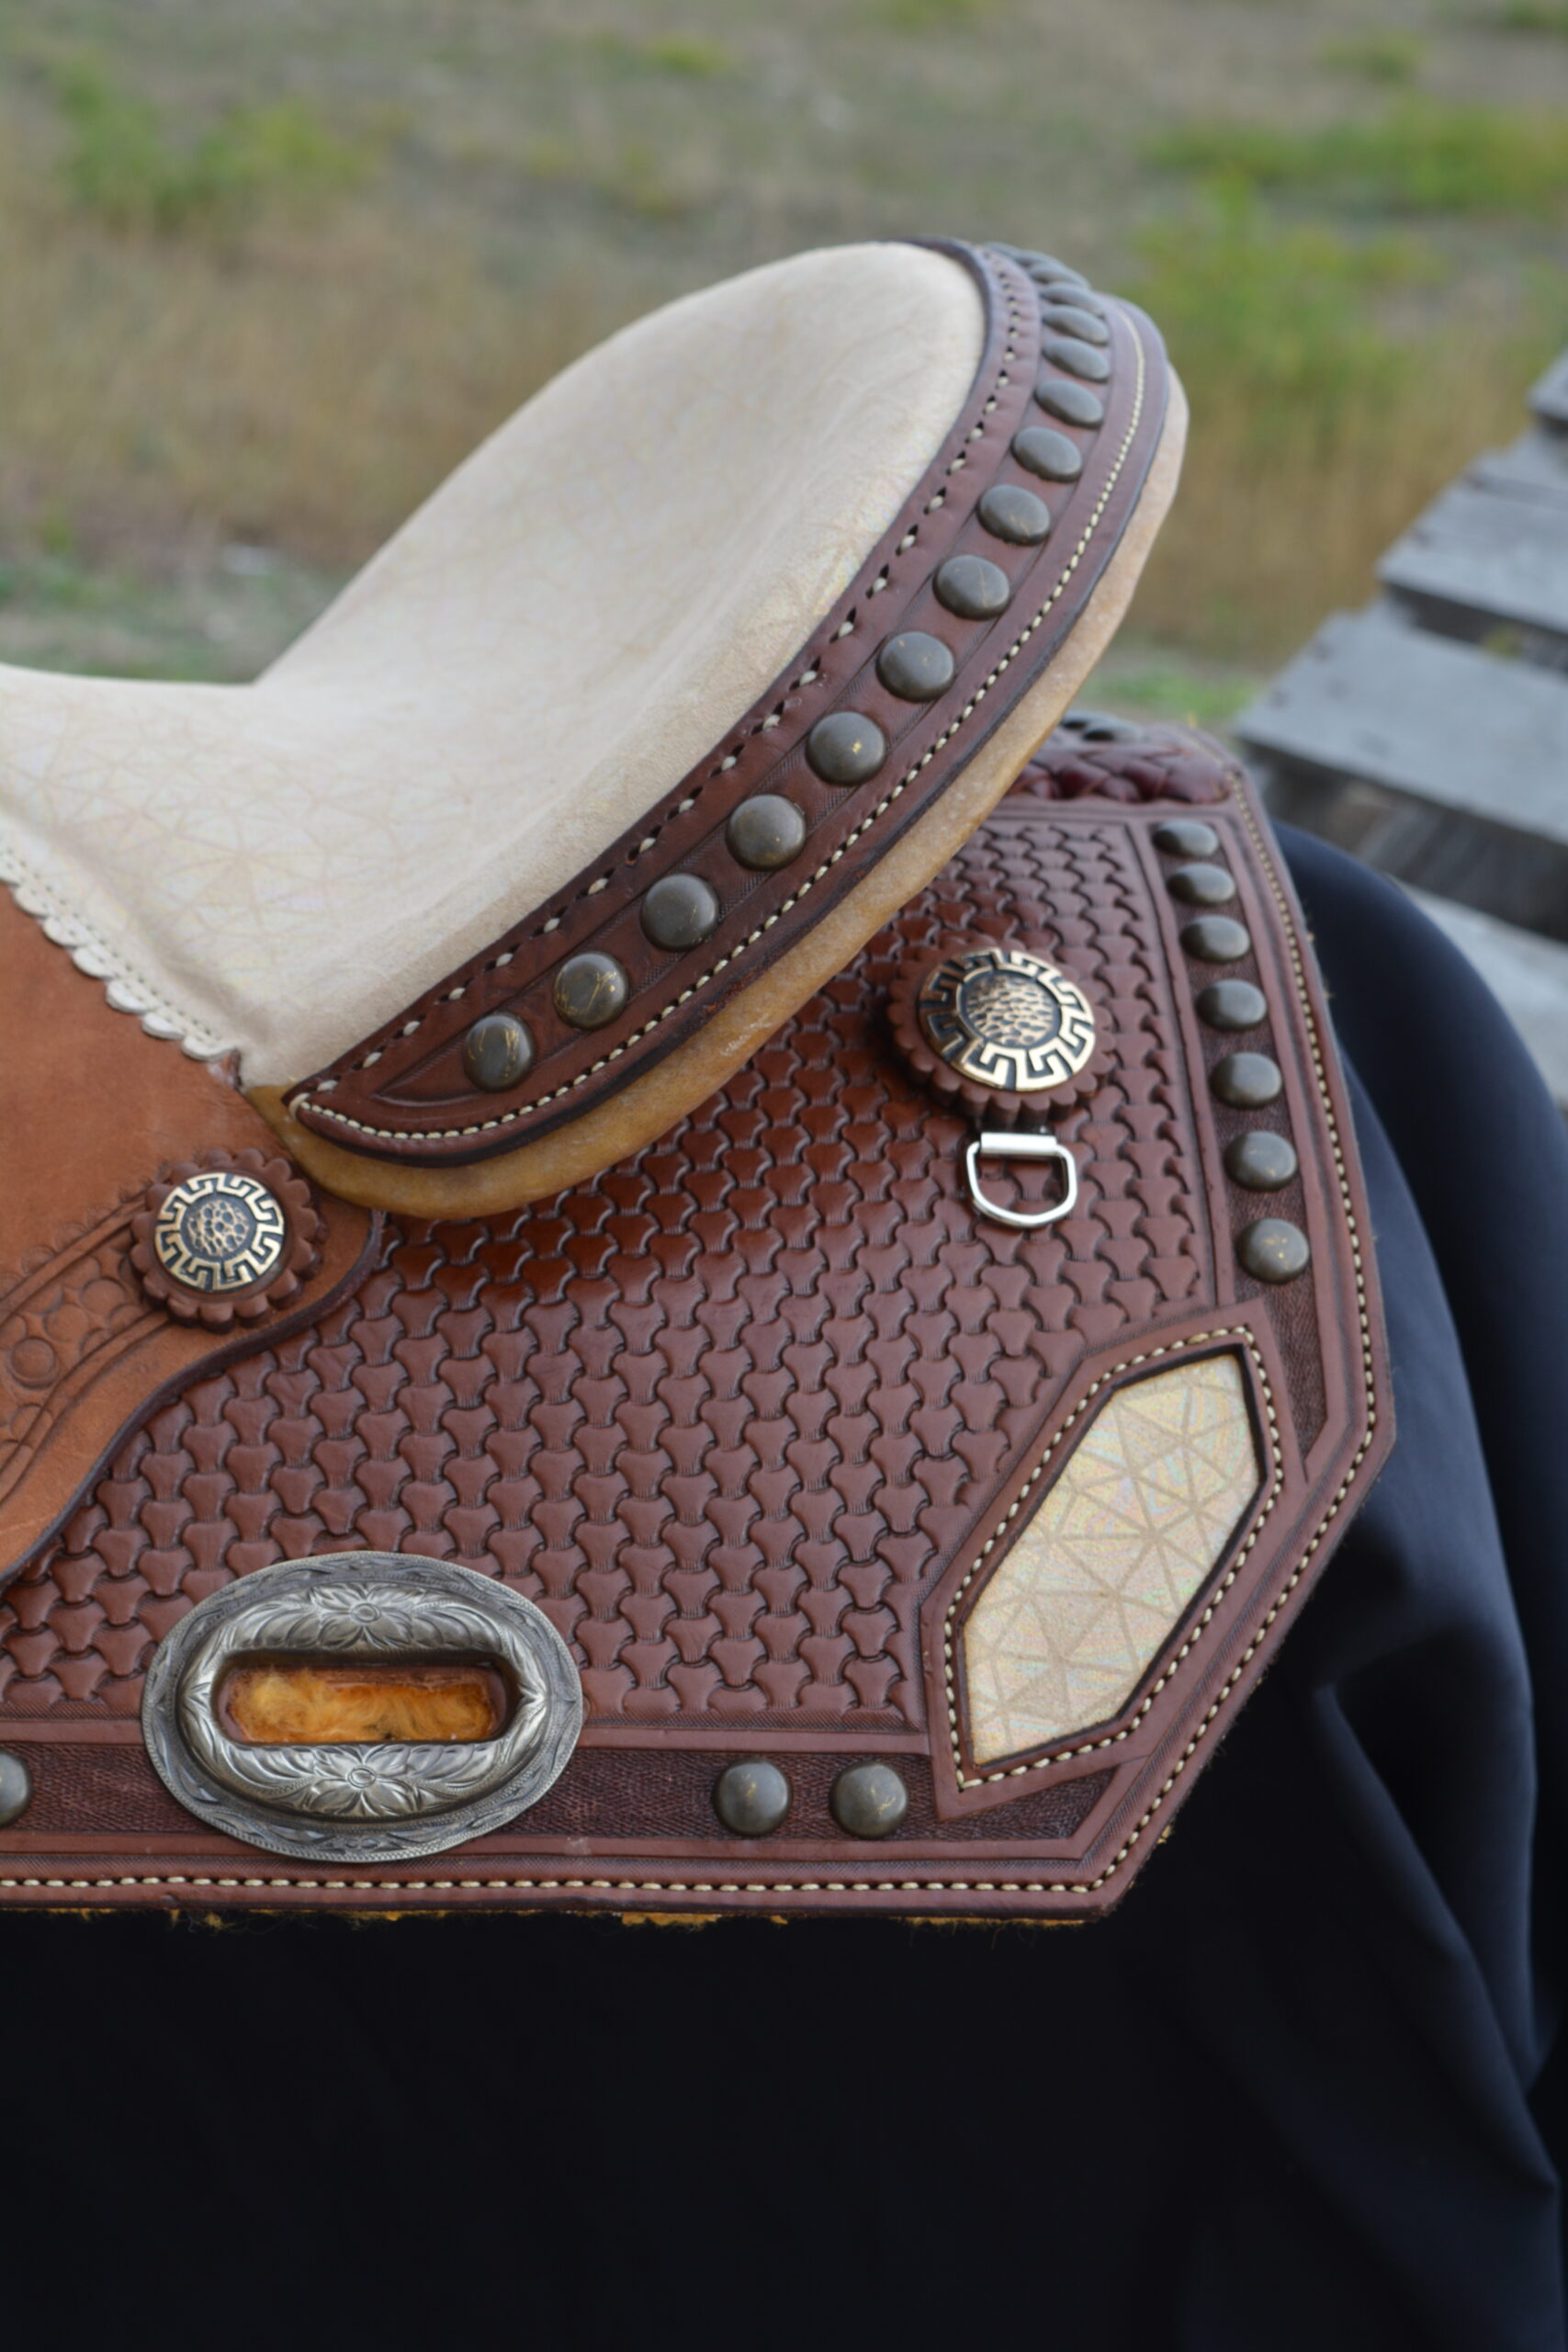 <p><b>PRE-ORDER ONLY</b></p> Sand suede seat toast leather barrel saddle